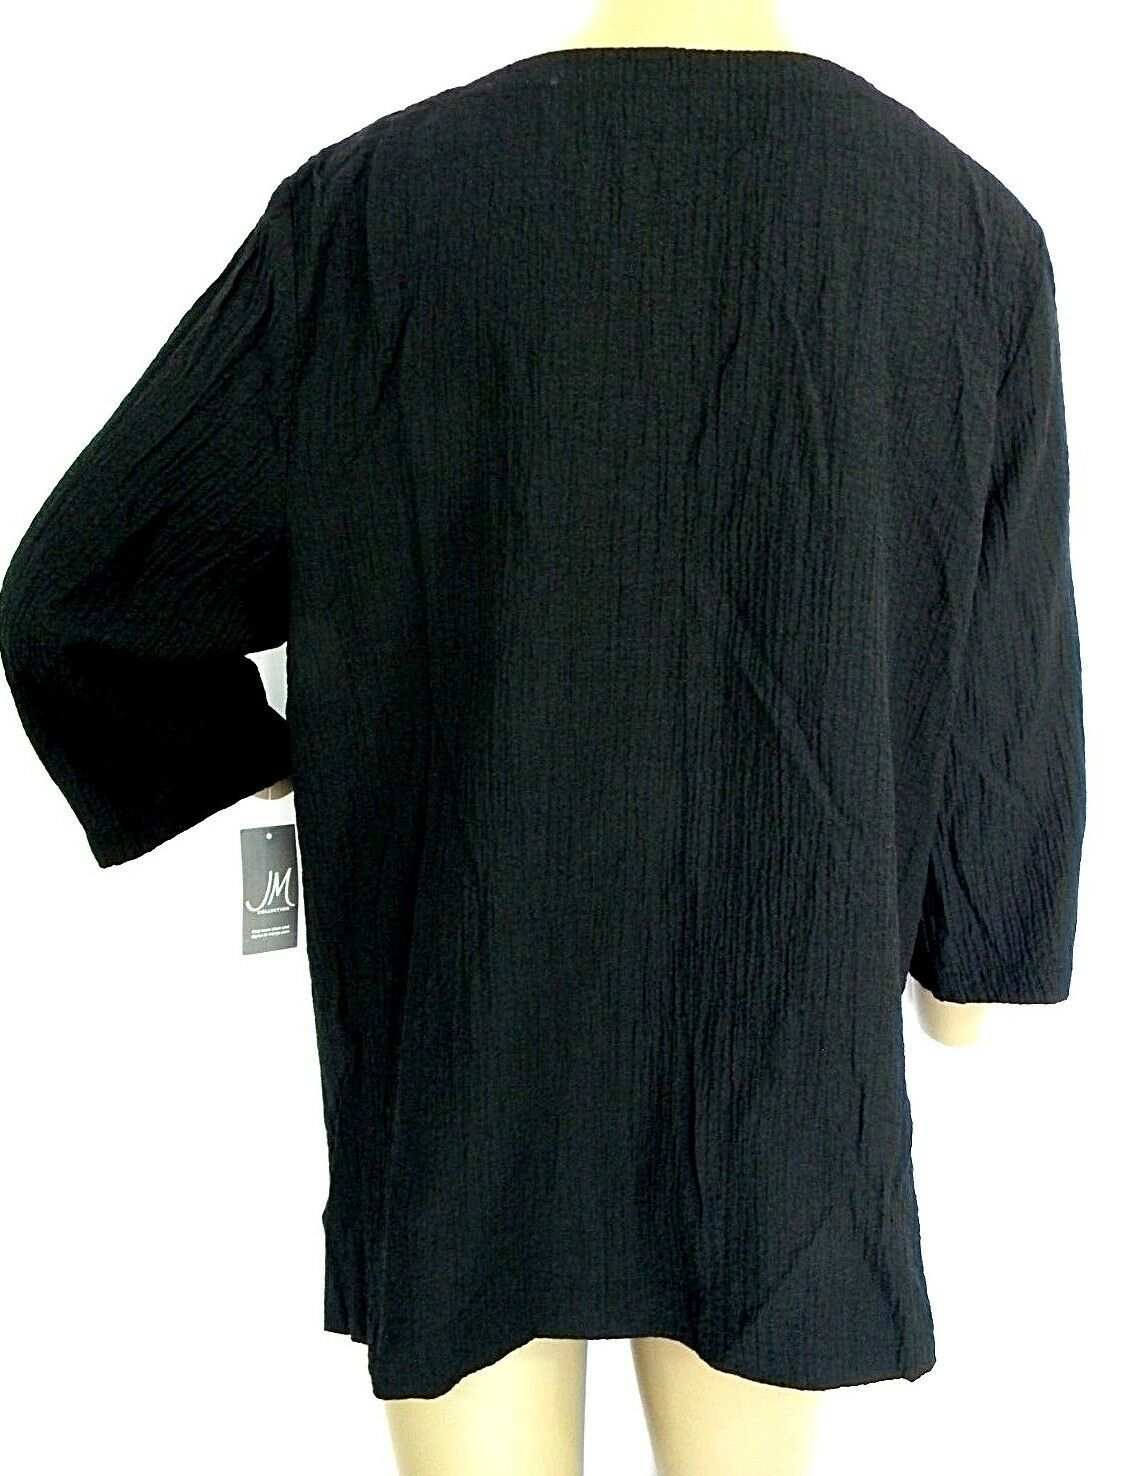 JM Collection Size Medium Blouse Womens Textured Keyhole Tunic Black Top NEW $54